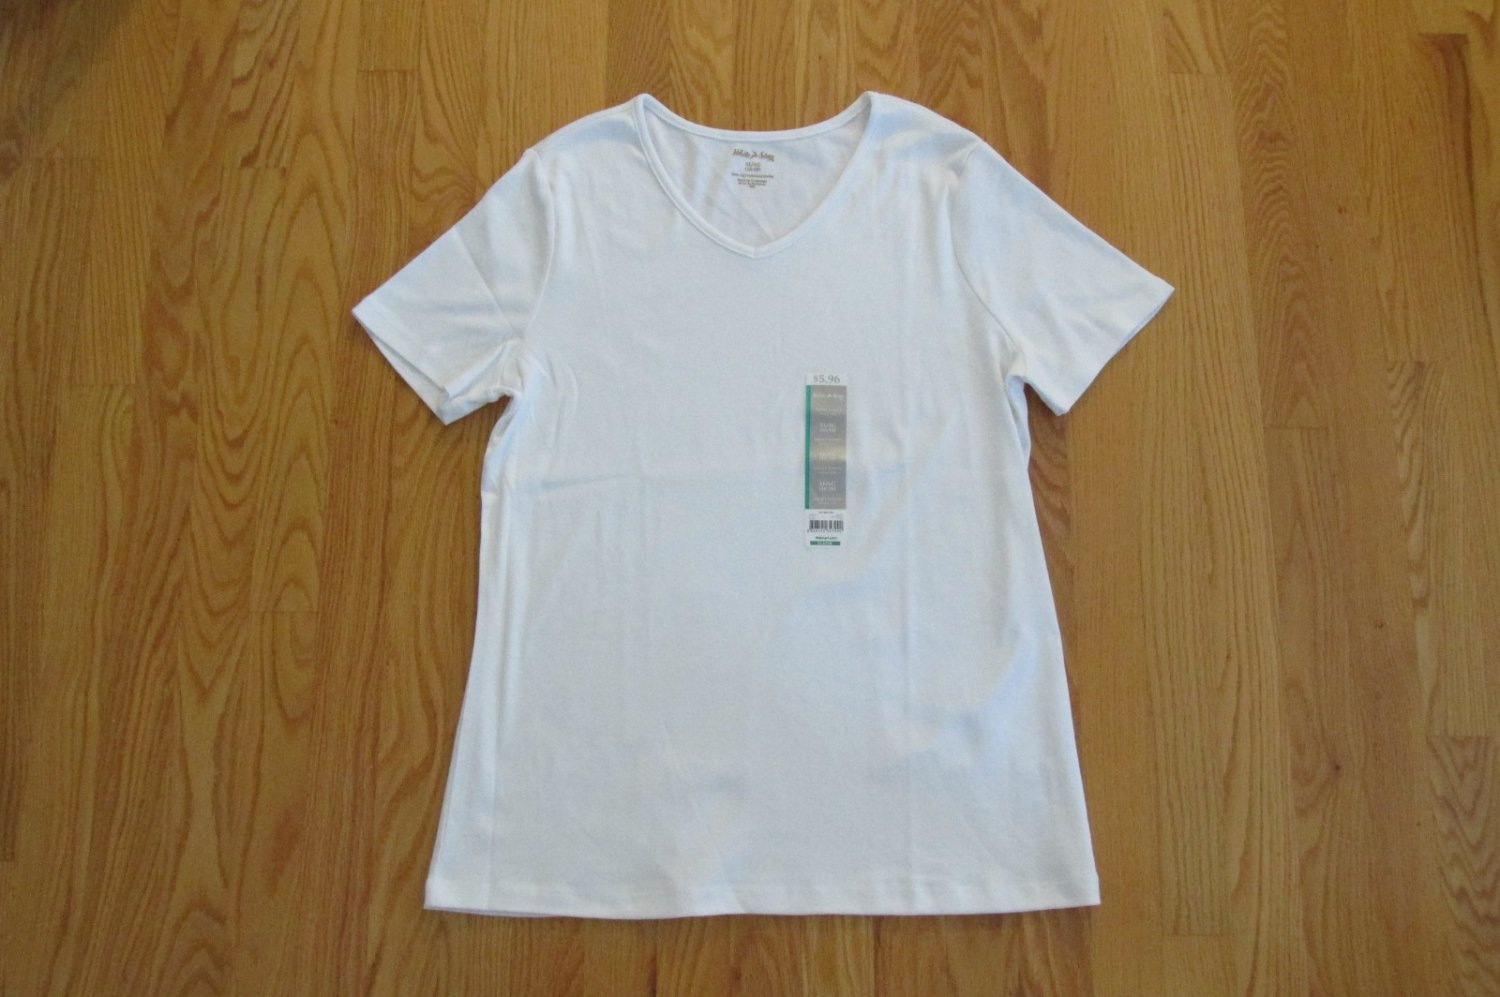 WHITE STAG WOMEN'S SIZE XL (16 - 18) T-SHIRT WHITE SHORT SLEEVE V NECK TEE TOP CLASSIC NWT